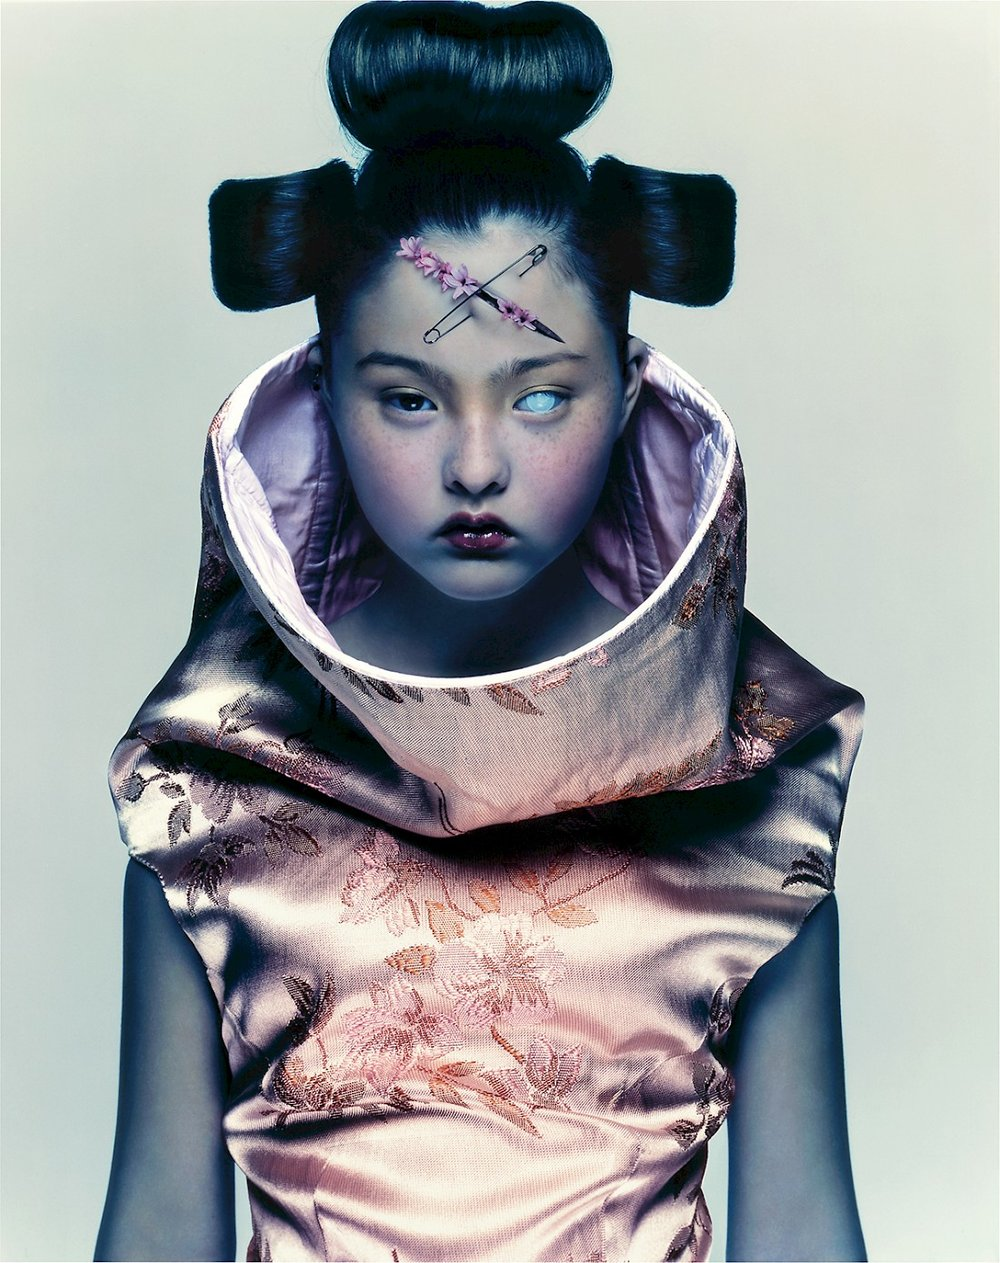 Nick Knight, Devon, Alexander McQueen (1997)